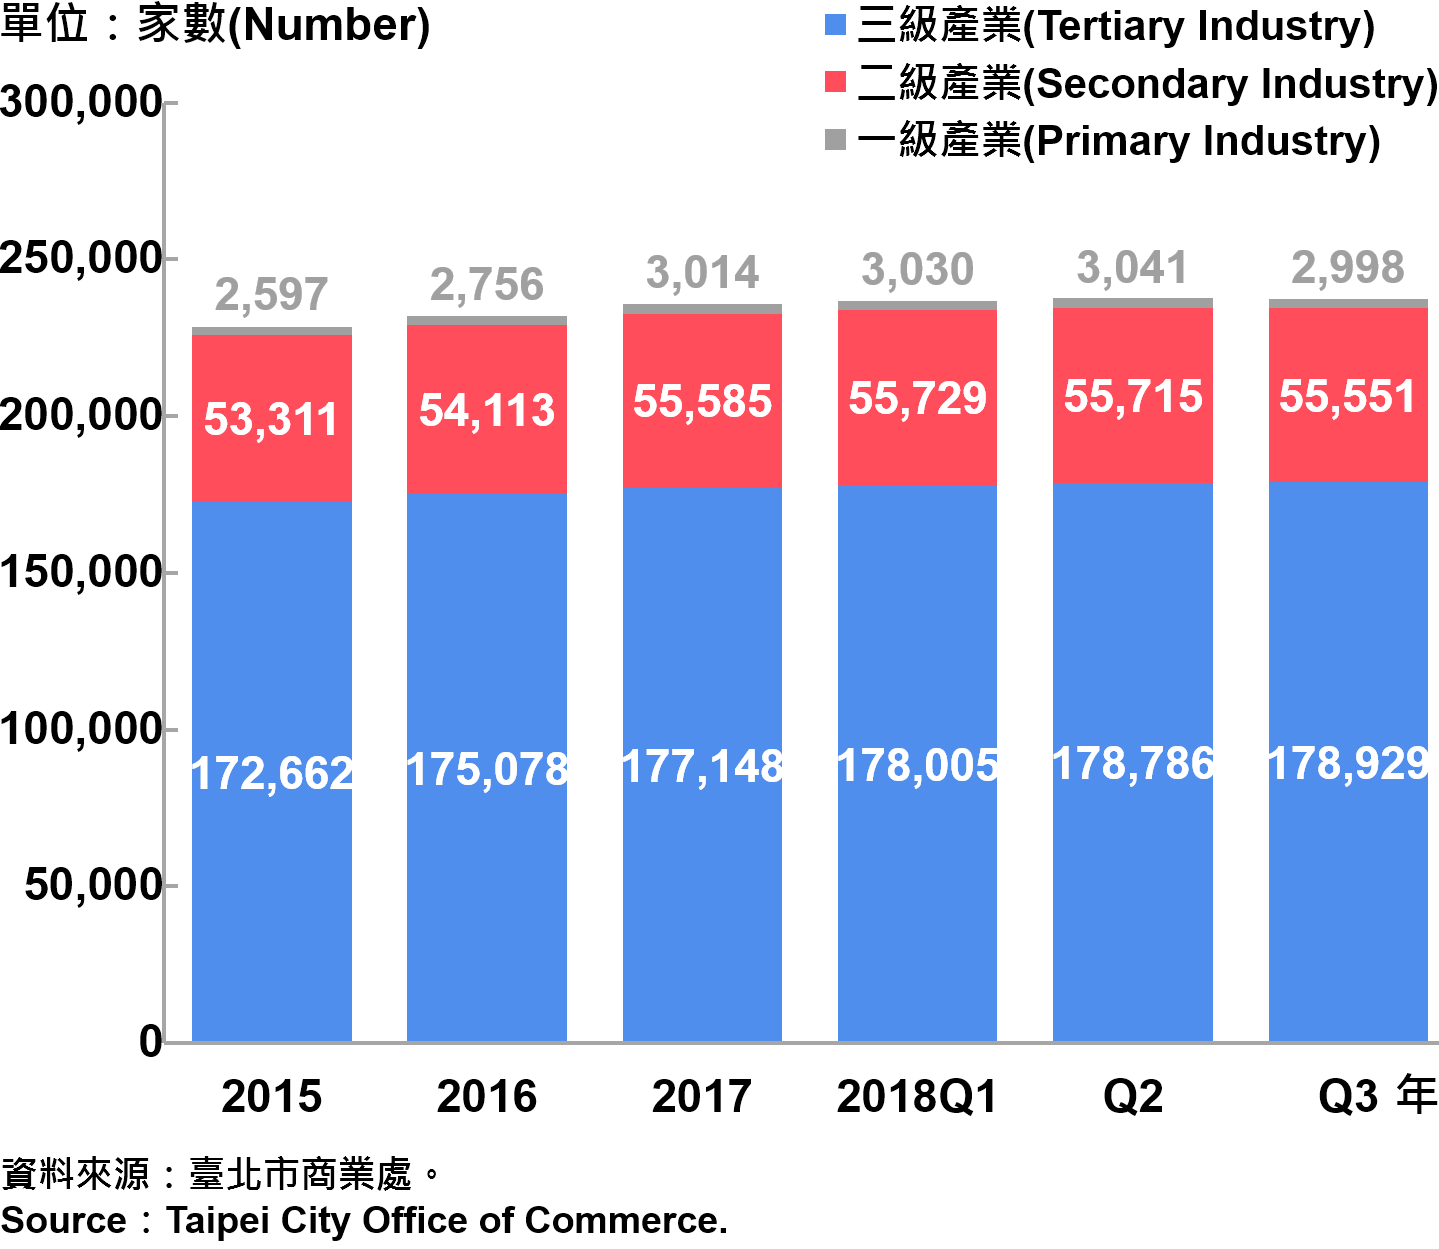 臺北市一二三級產業登記家數—2018Q3 Numbe of Primary , Secondary and Tertiary Industry in Taipei City—2018Q3